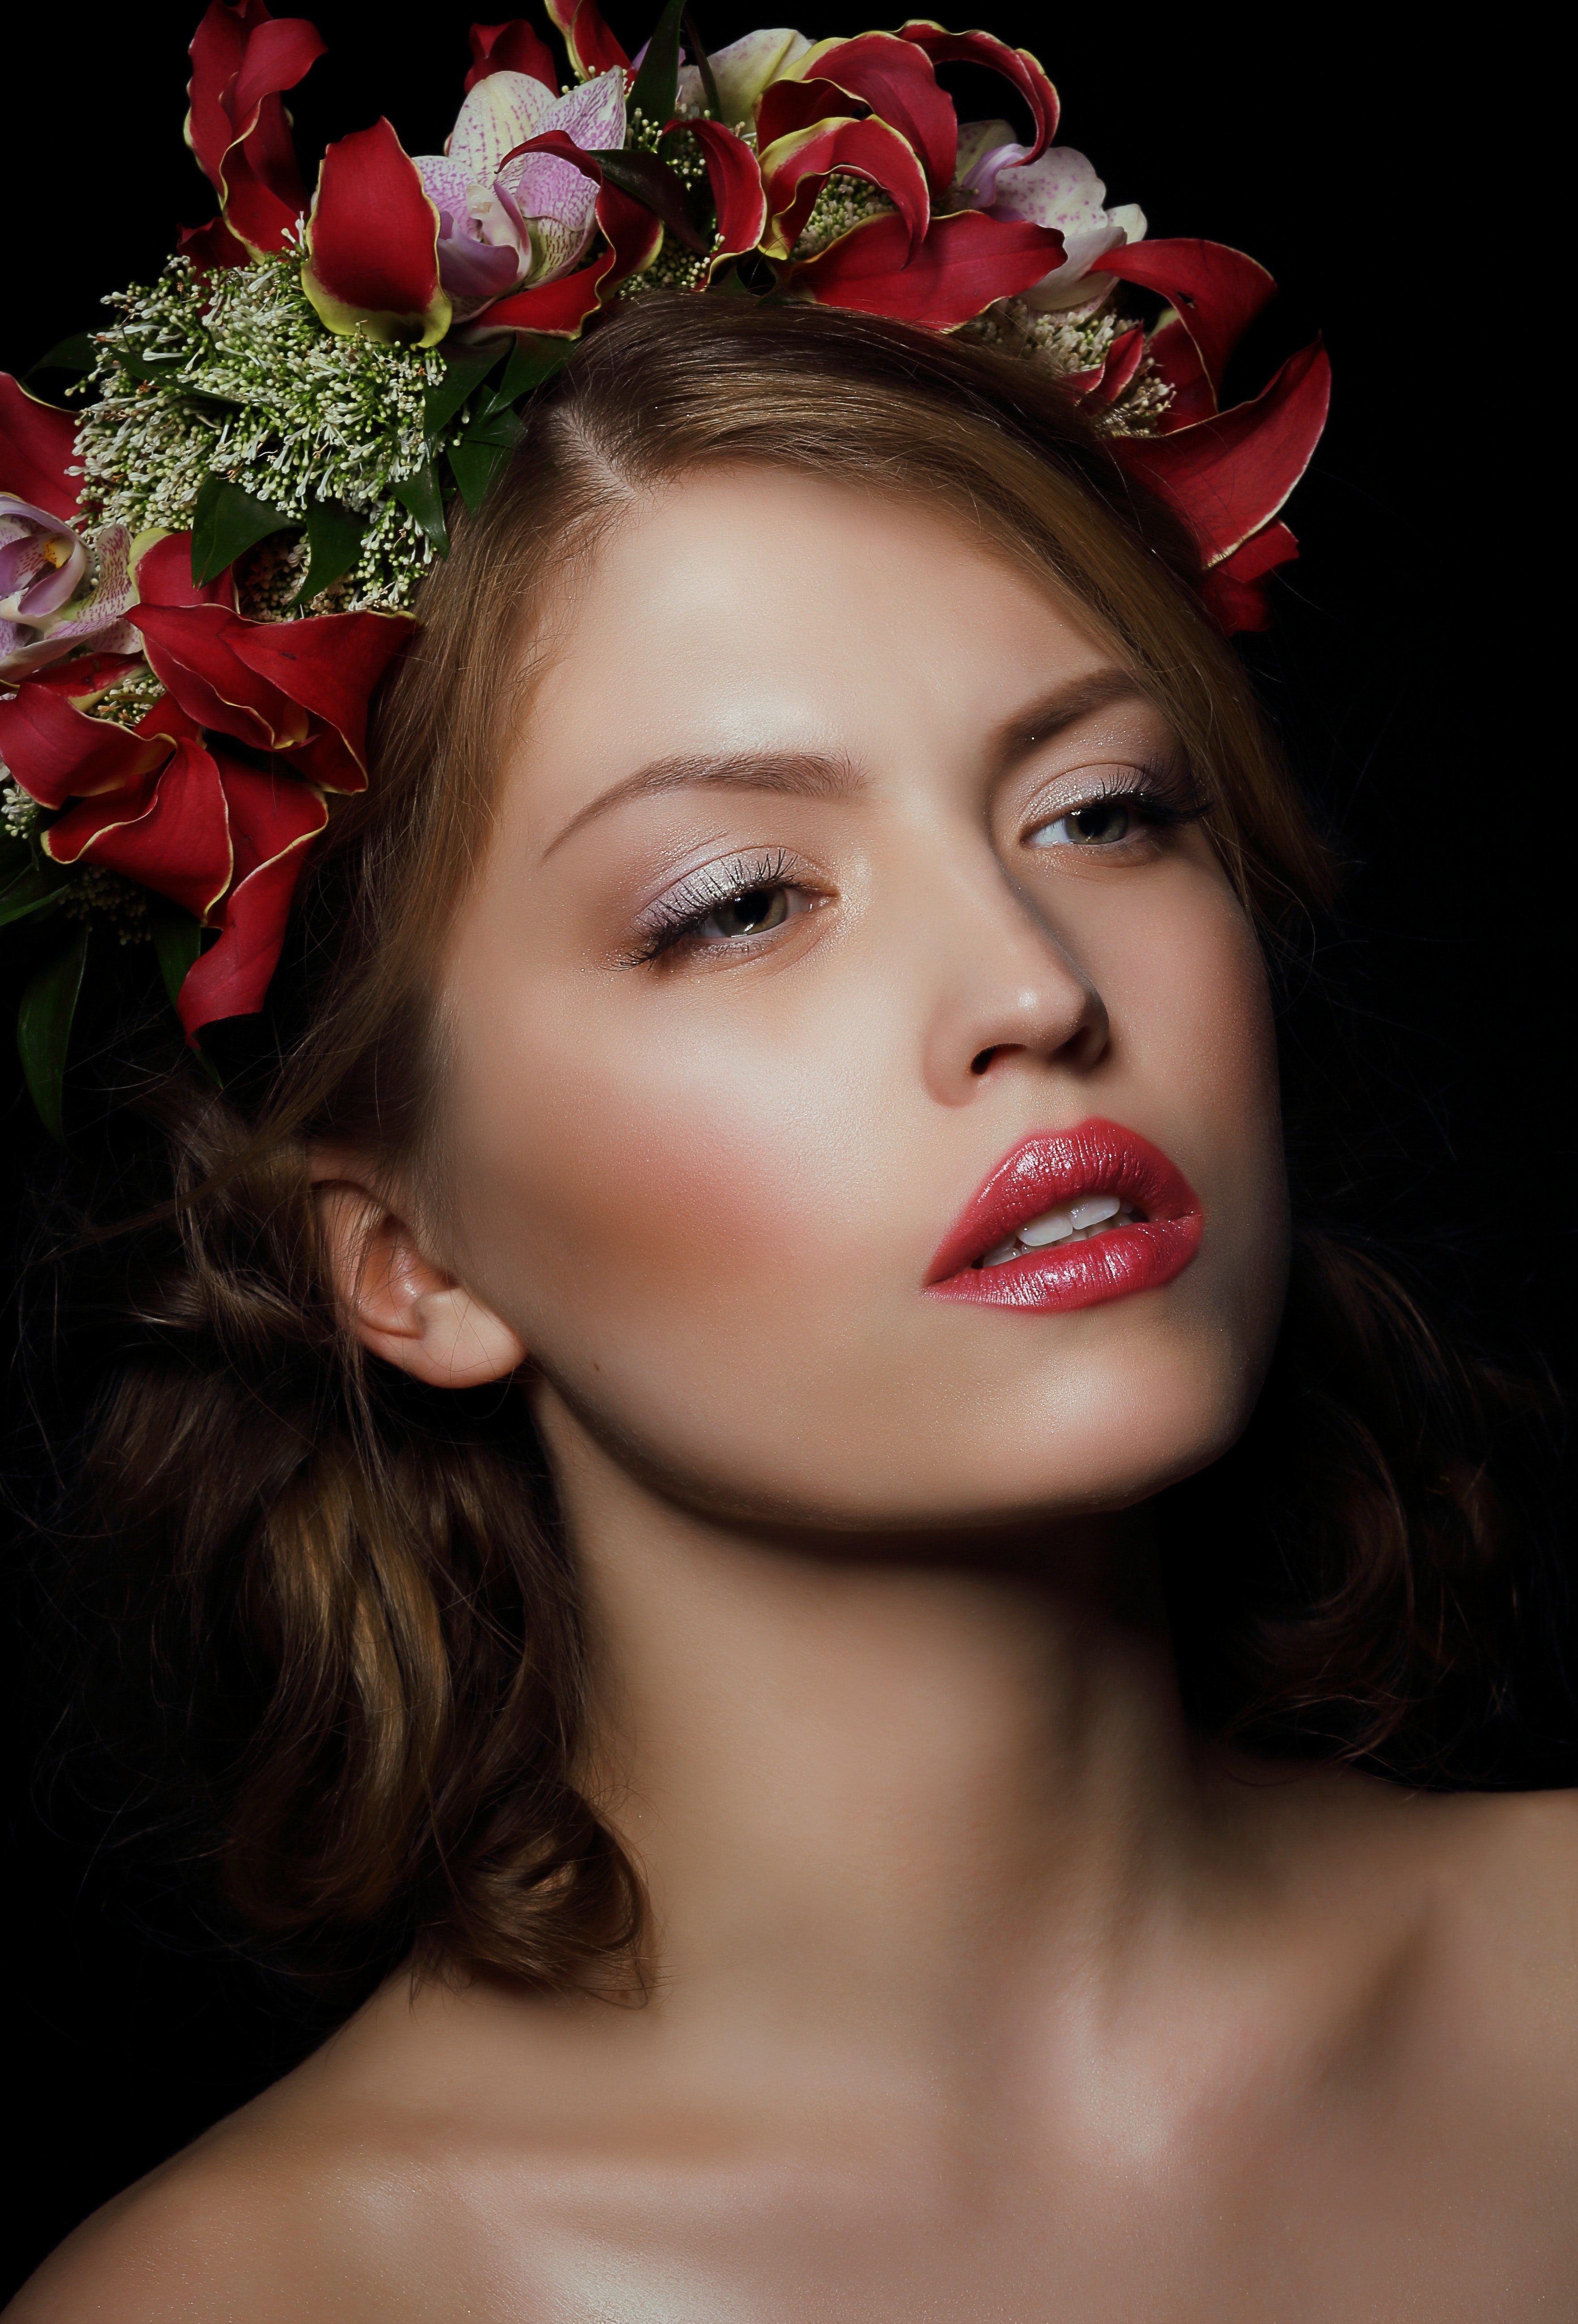 Woman wearing red floral headdress photo